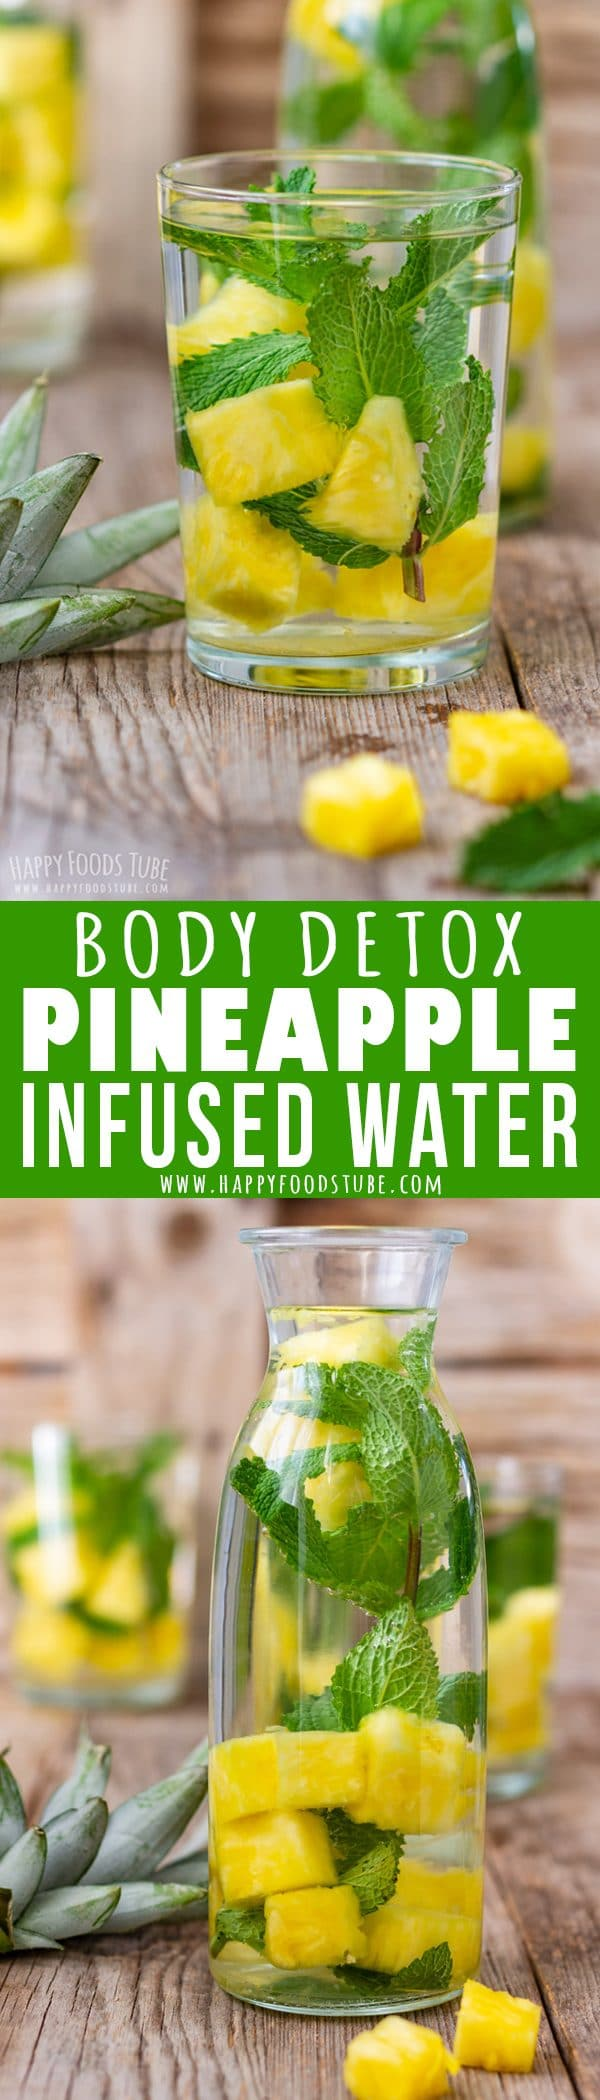 Pineapple Infused Water Recipe